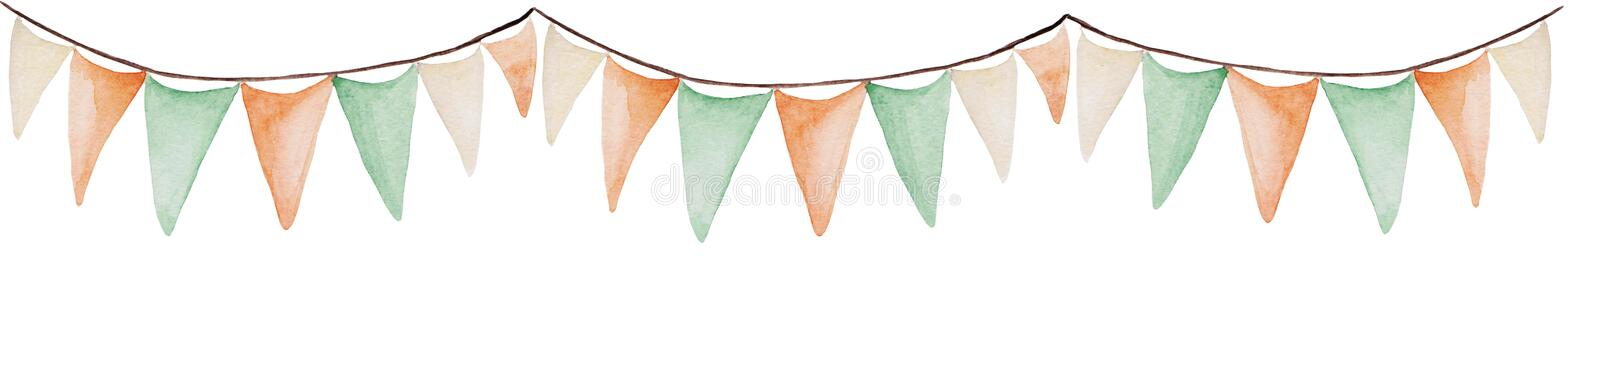 Watercolor Saint Patrick`s Day banner. Flags ornament. For design, print or background stock illustration